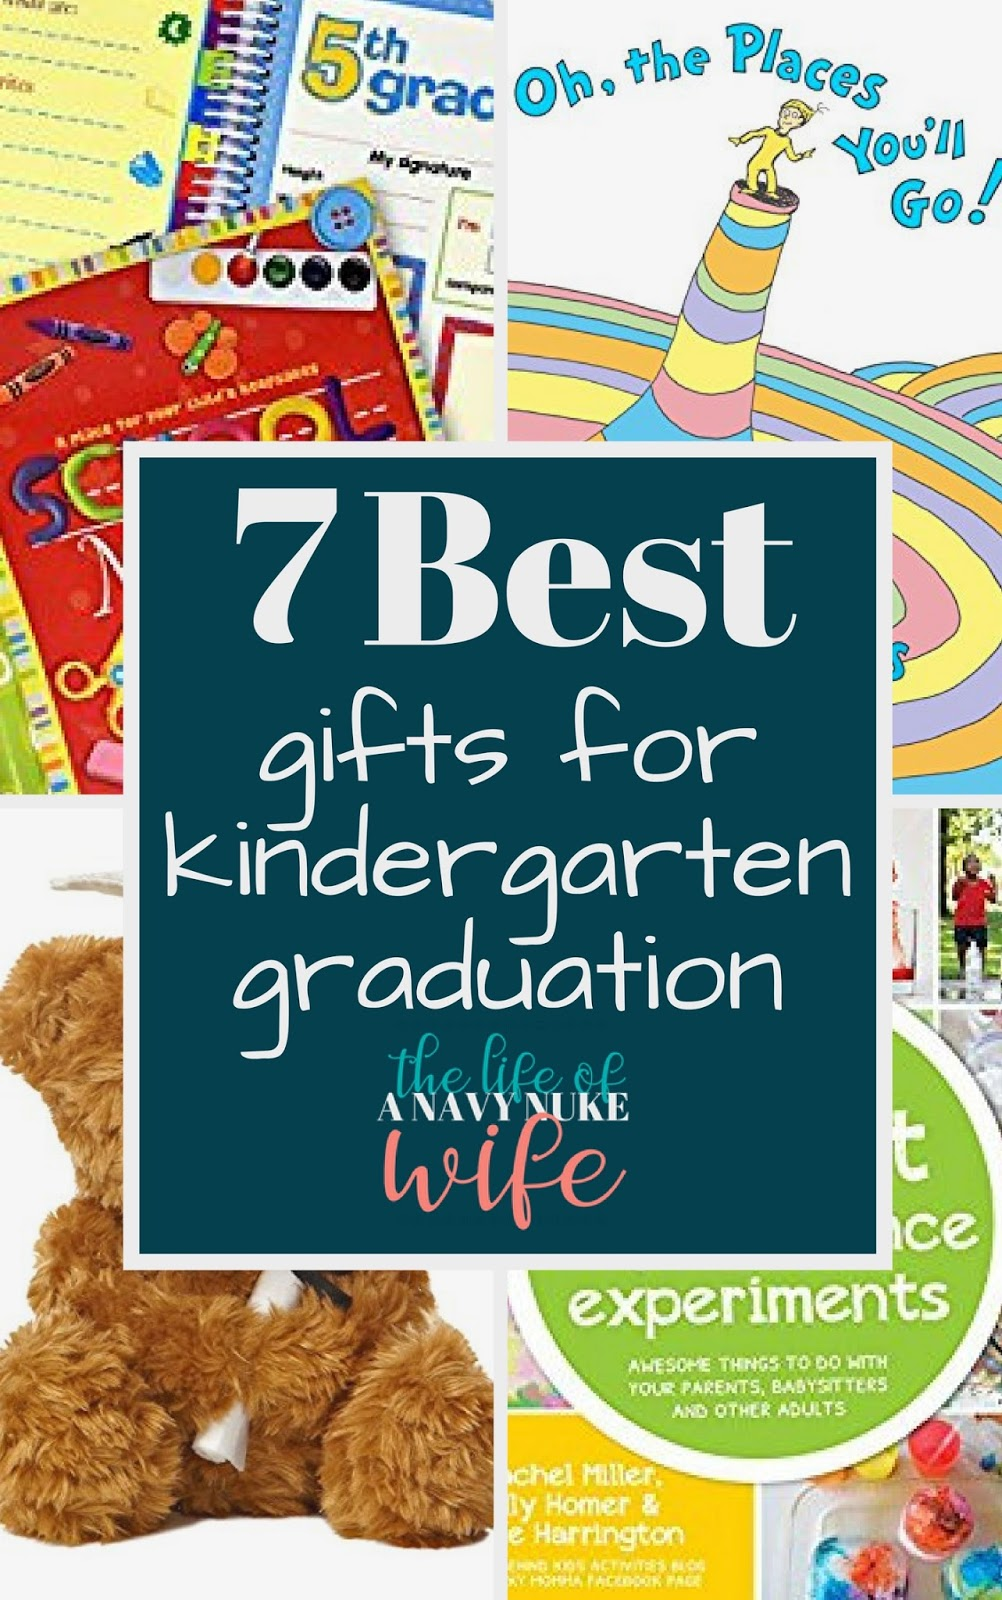 preschool or kindergarten graduation gifts - the life of a navy nuke